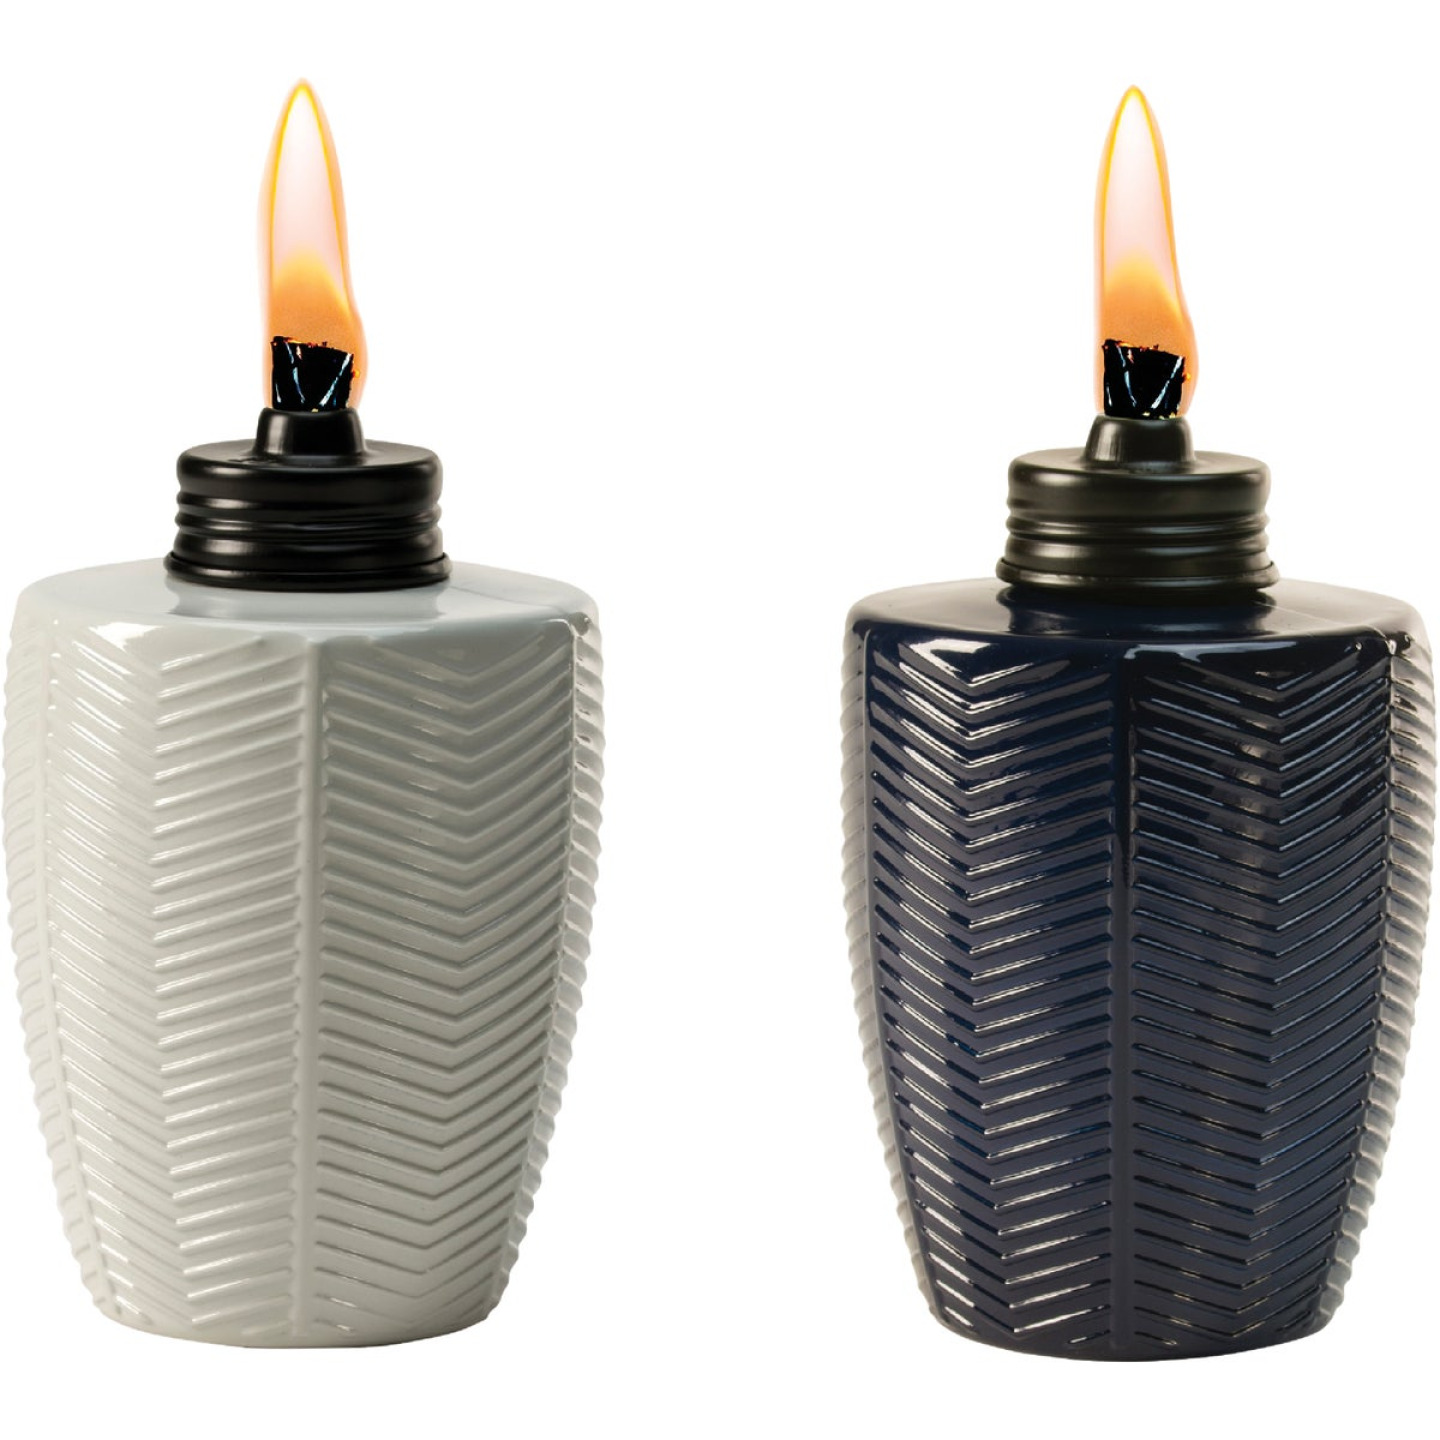 Tiki 5.75 In. Glass Herringbone Table Torch Image 1